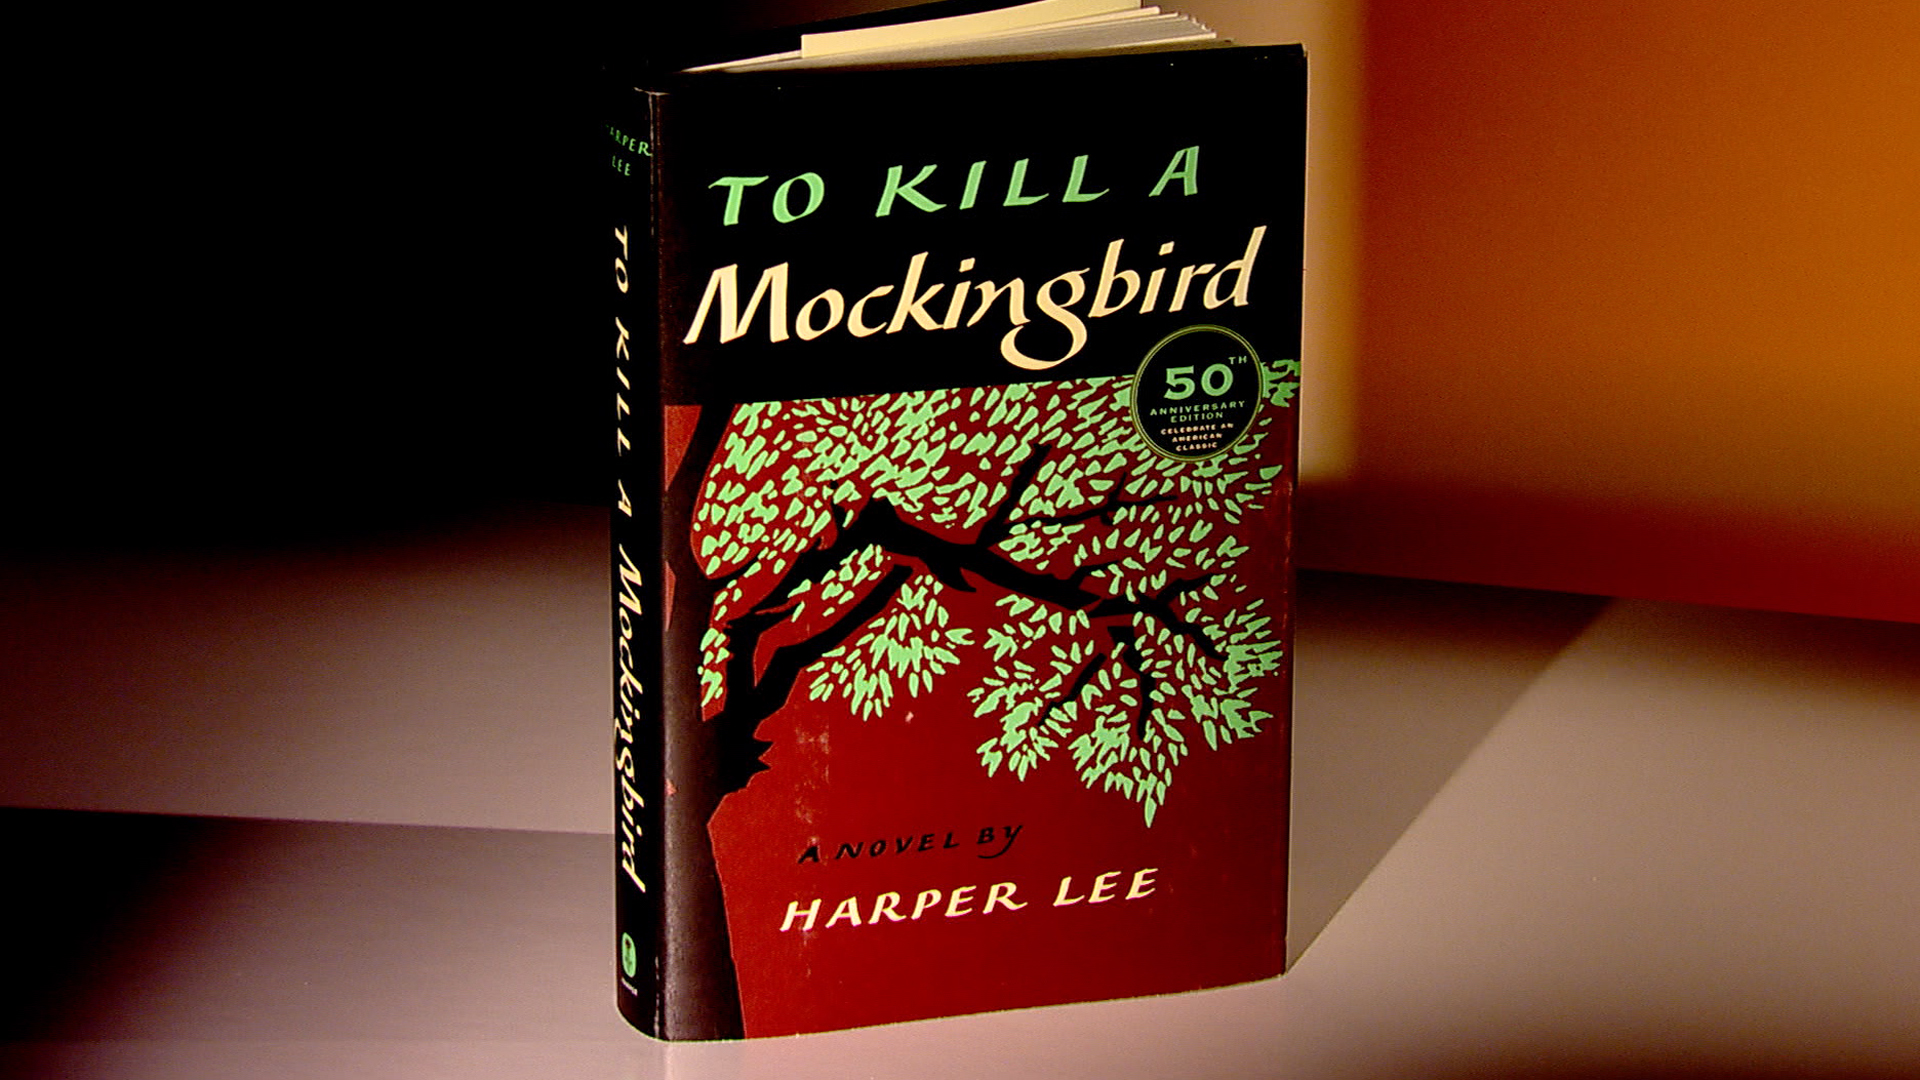 justice is not for all as described in harper lees to kill a mockingbird Throughout the novel, mockingbirds symbolically represent innocent, defenseless beings as author harper lee explains through her characters atticus and miss maudie in to kill a mockingbird, the 4- 2 minor symbolic mockingbirds - not characters justice - justice is meant to serve people fairly.